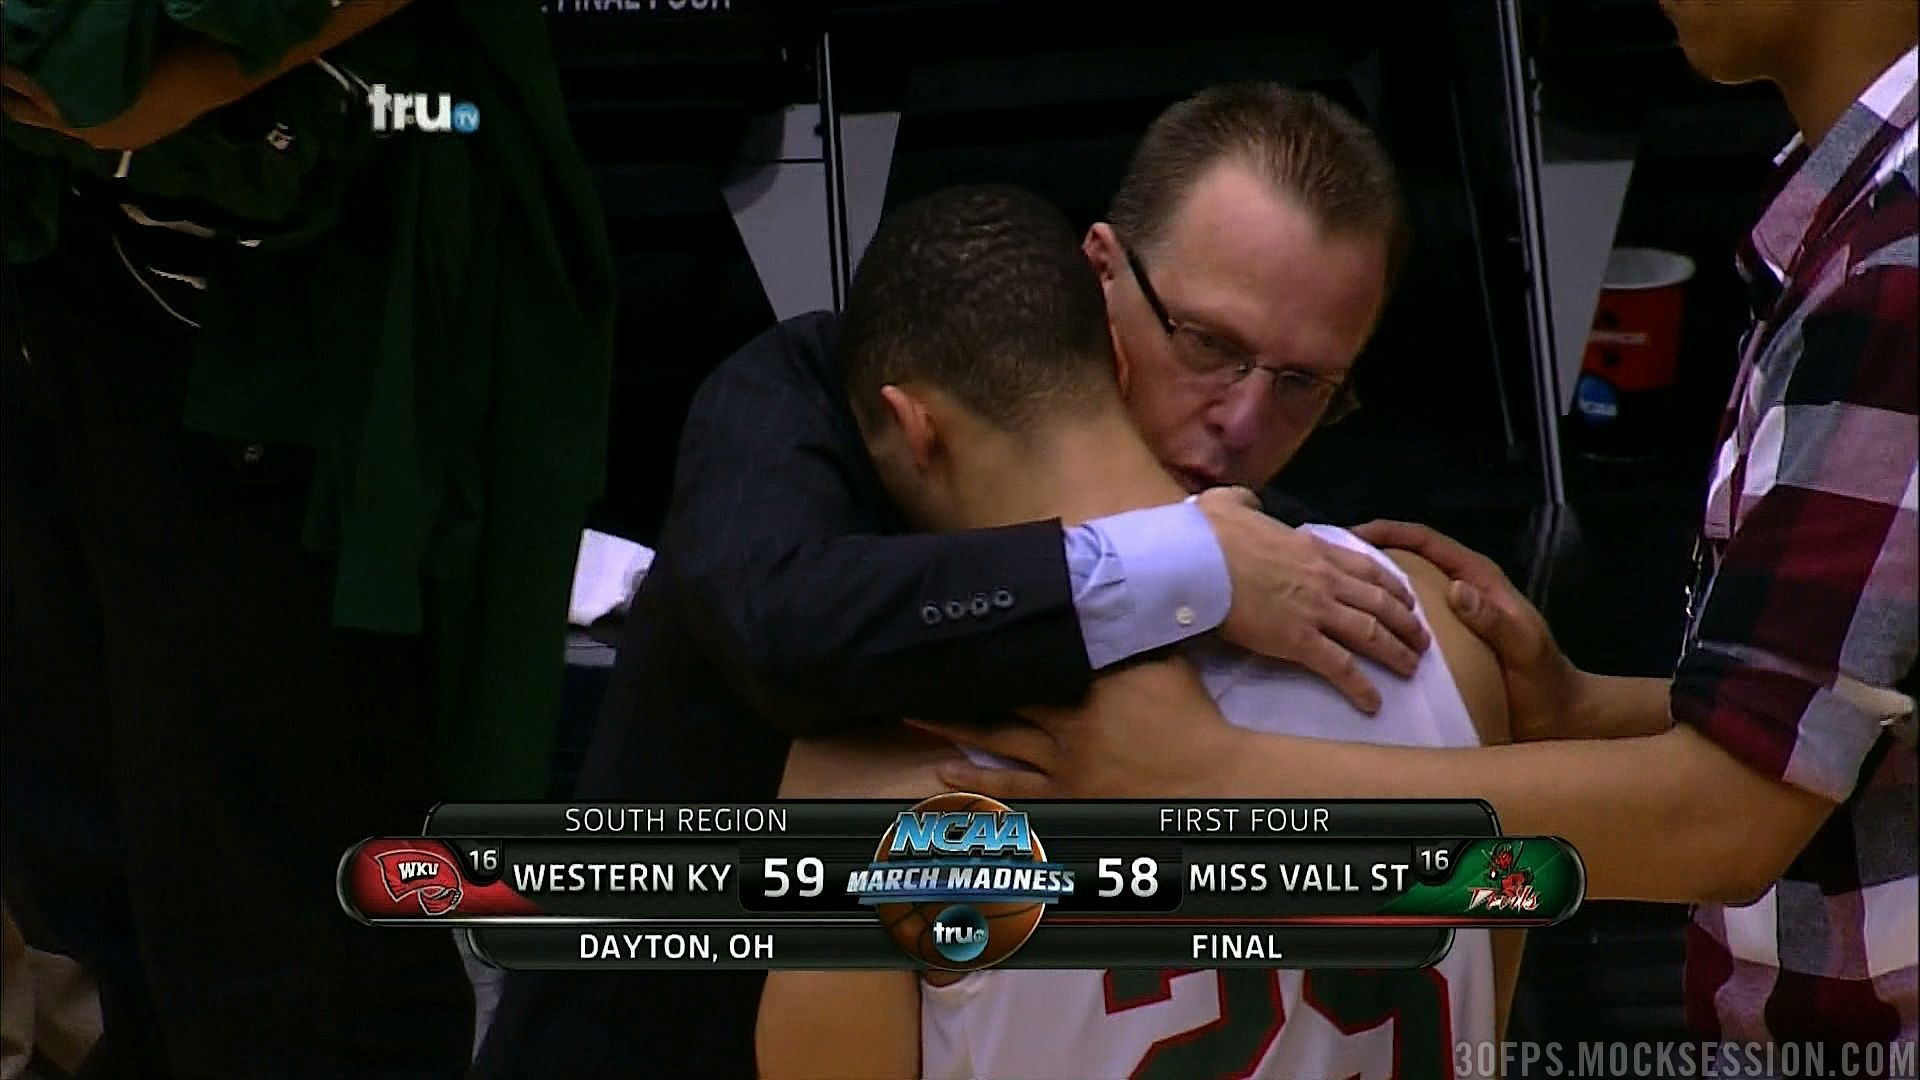 WKU Coach Ray Harper consoles MSVU's Kevin Burwell after